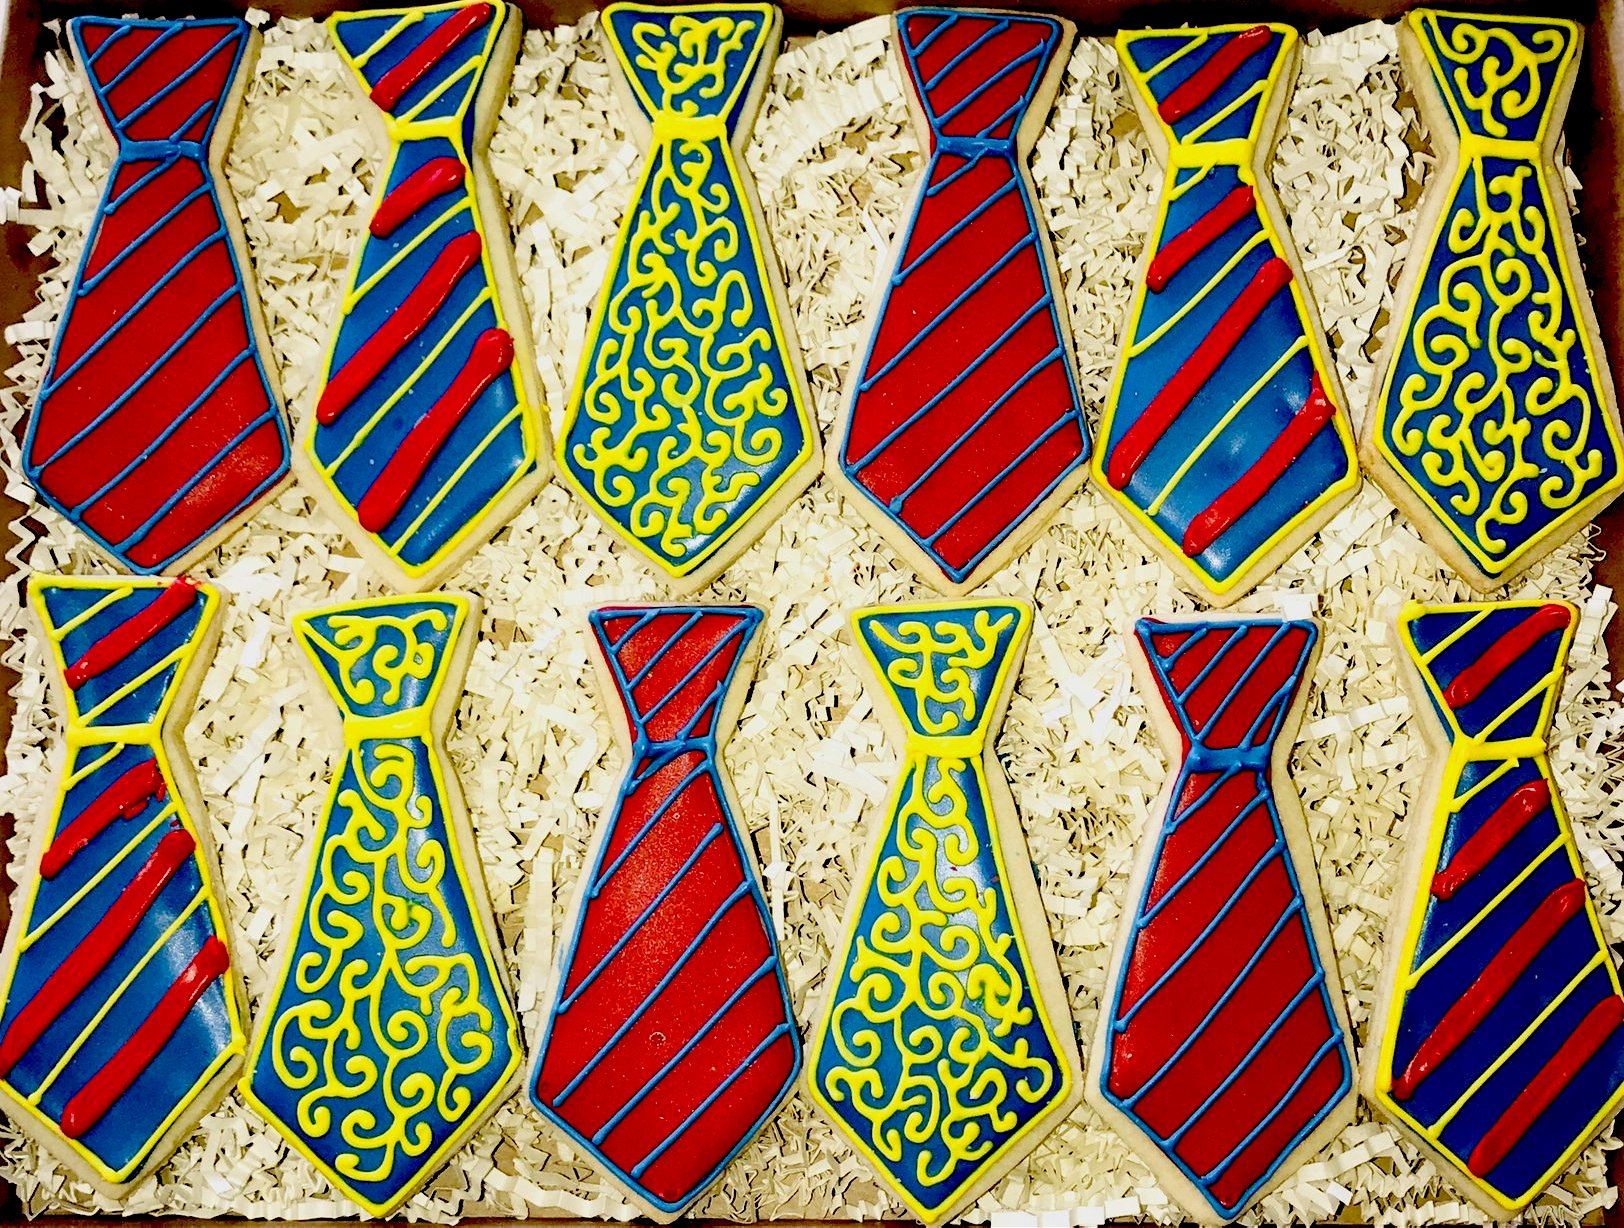 COOKIE BOX FATHER'S DAY TIES